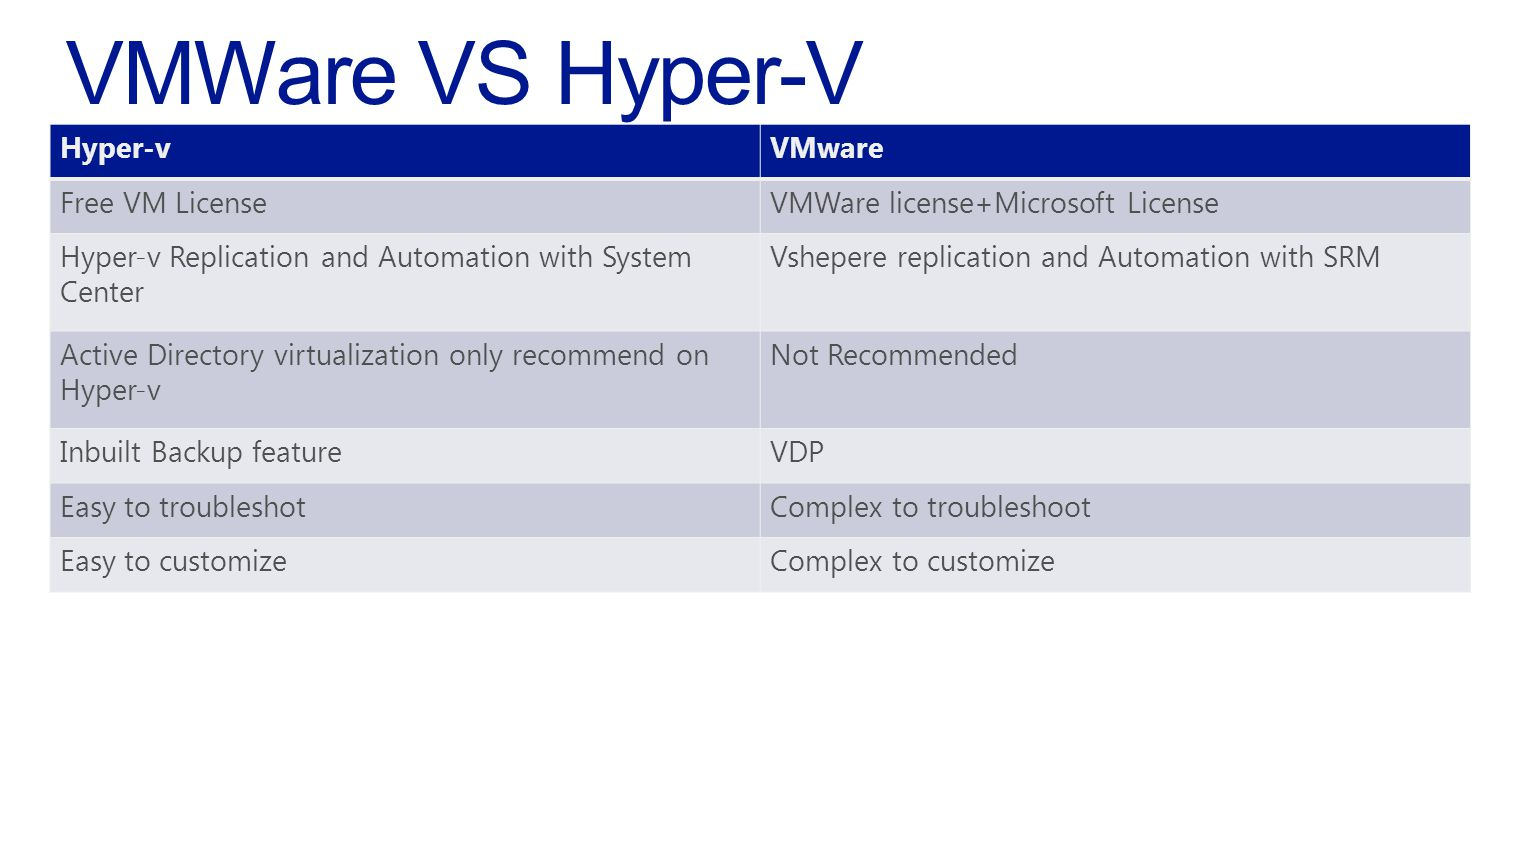 Hyper-vVMware Free VM LicenseVMWare license+Microsoft License Hyper-v Replication and Automation with System Center Vshepere replication and Automation with SRM Active Directory virtualization only recommend on Hyper-v Not Recommended Inbuilt Backup featureVDP Easy to troubleshotComplex to troubleshoot Easy to customizeComplex to customize